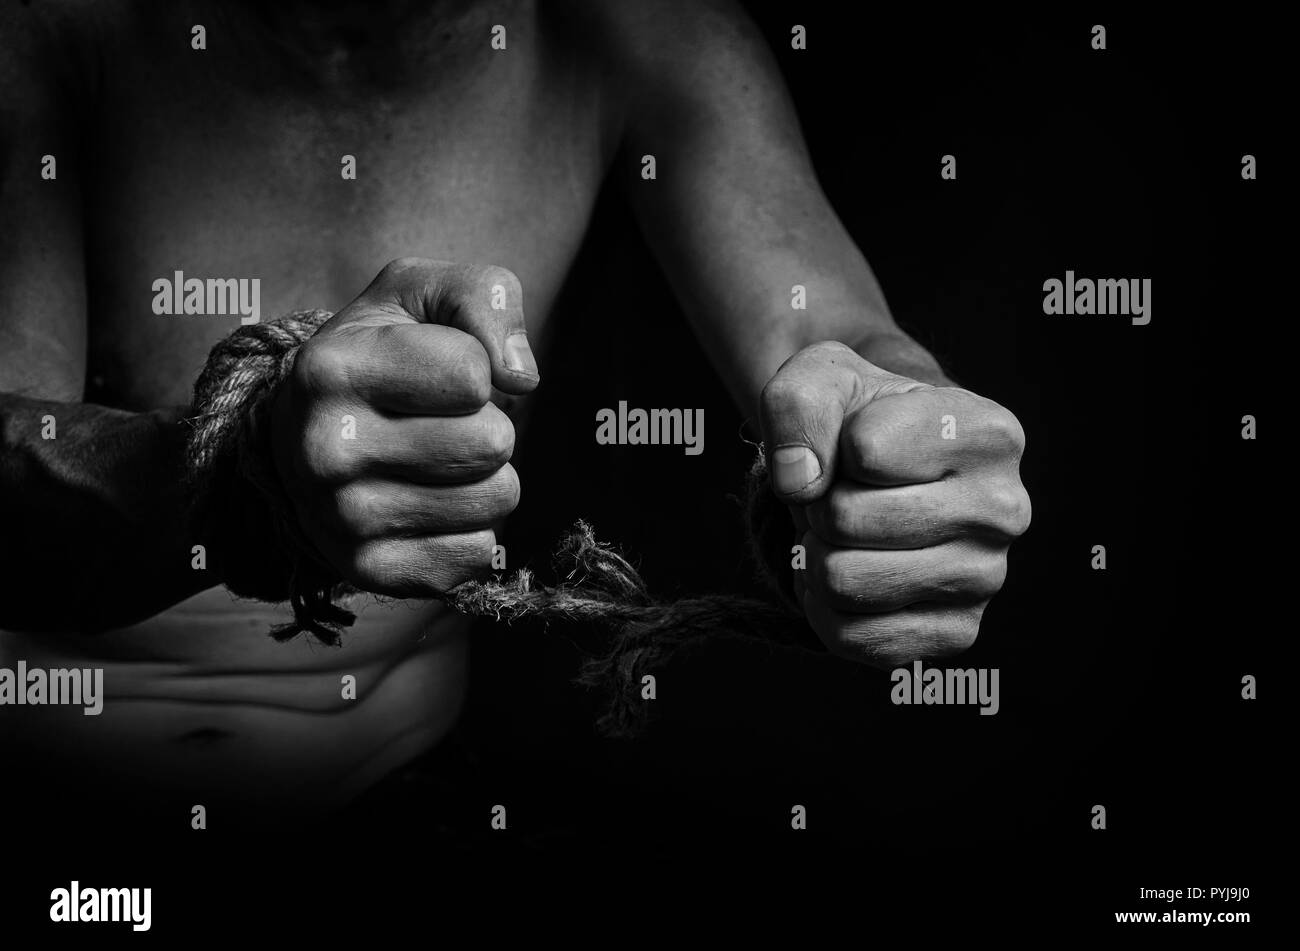 Man breaks the rope that bound his hands. - Stock Image